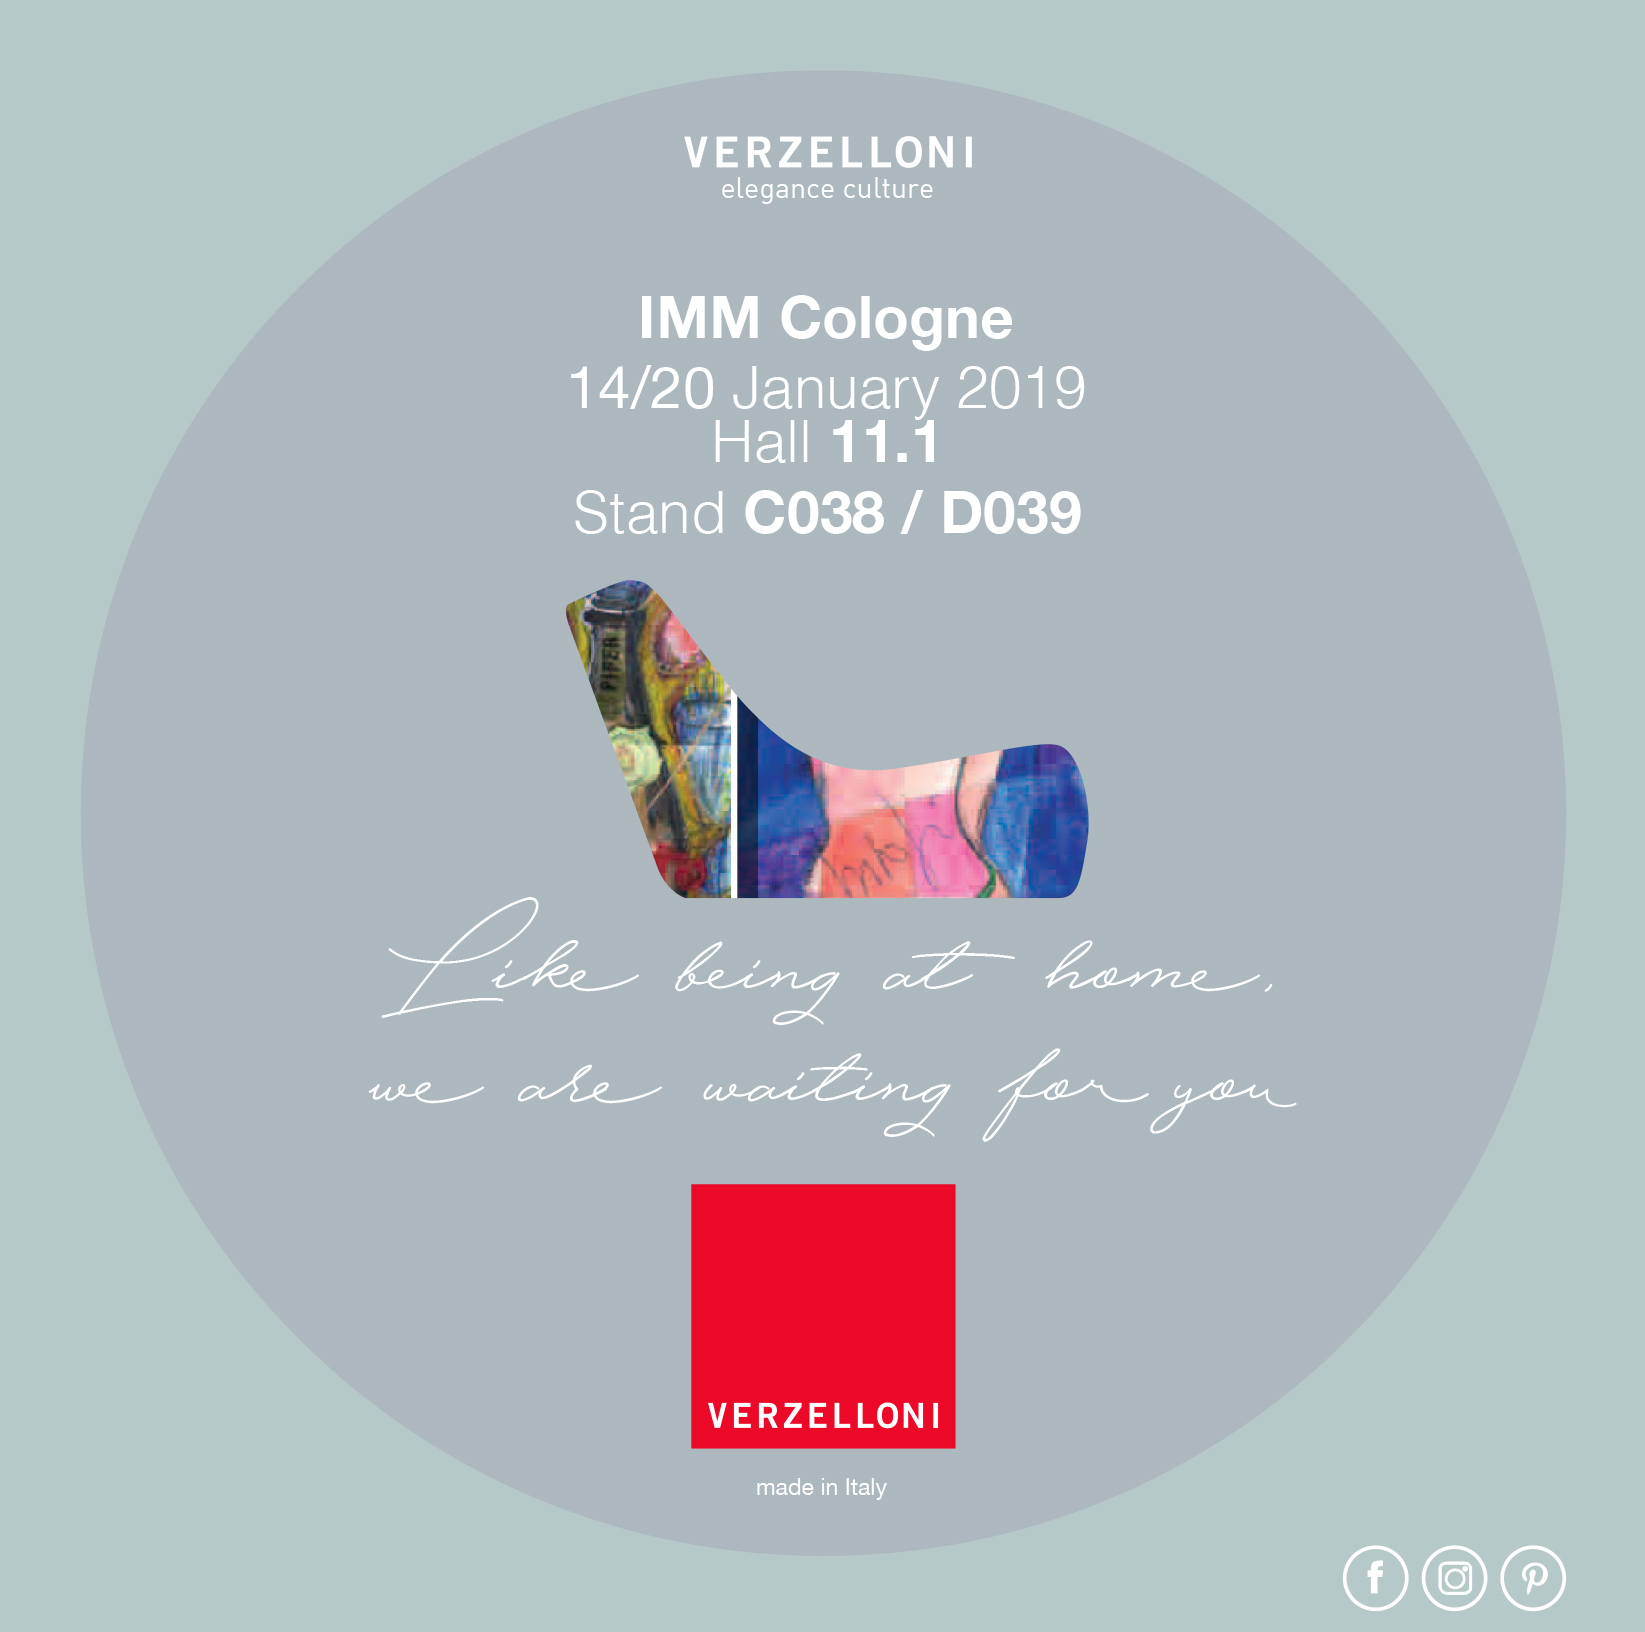 VERZELLONI at IMM Cologne |14-20 January 2019